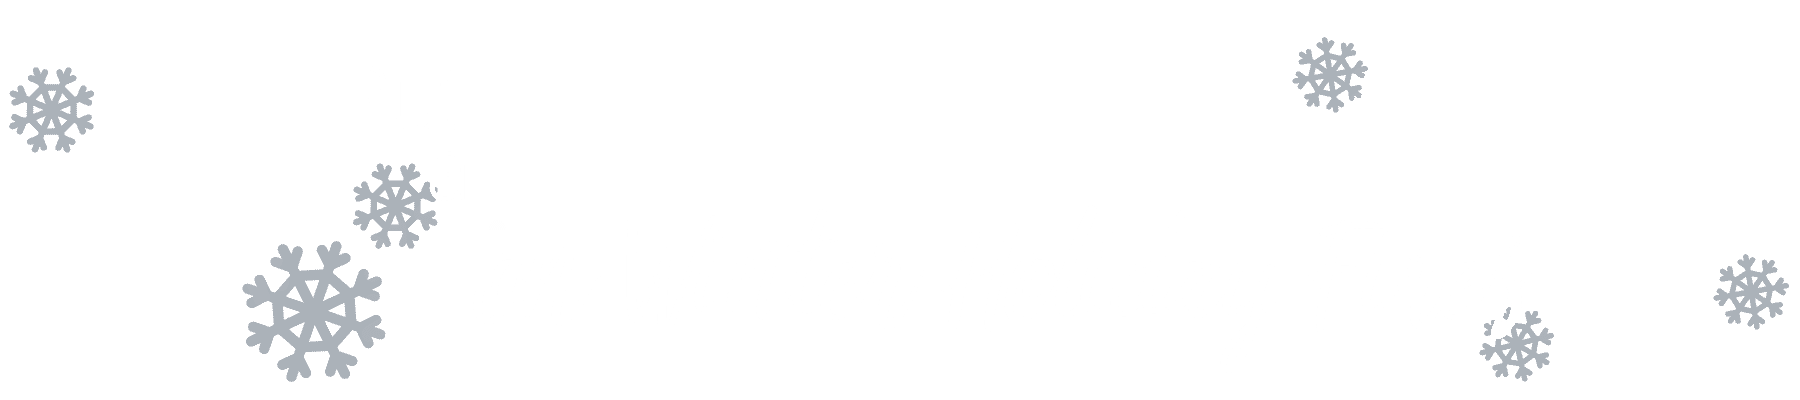 Put a Freeze on Winter Holiday Fires